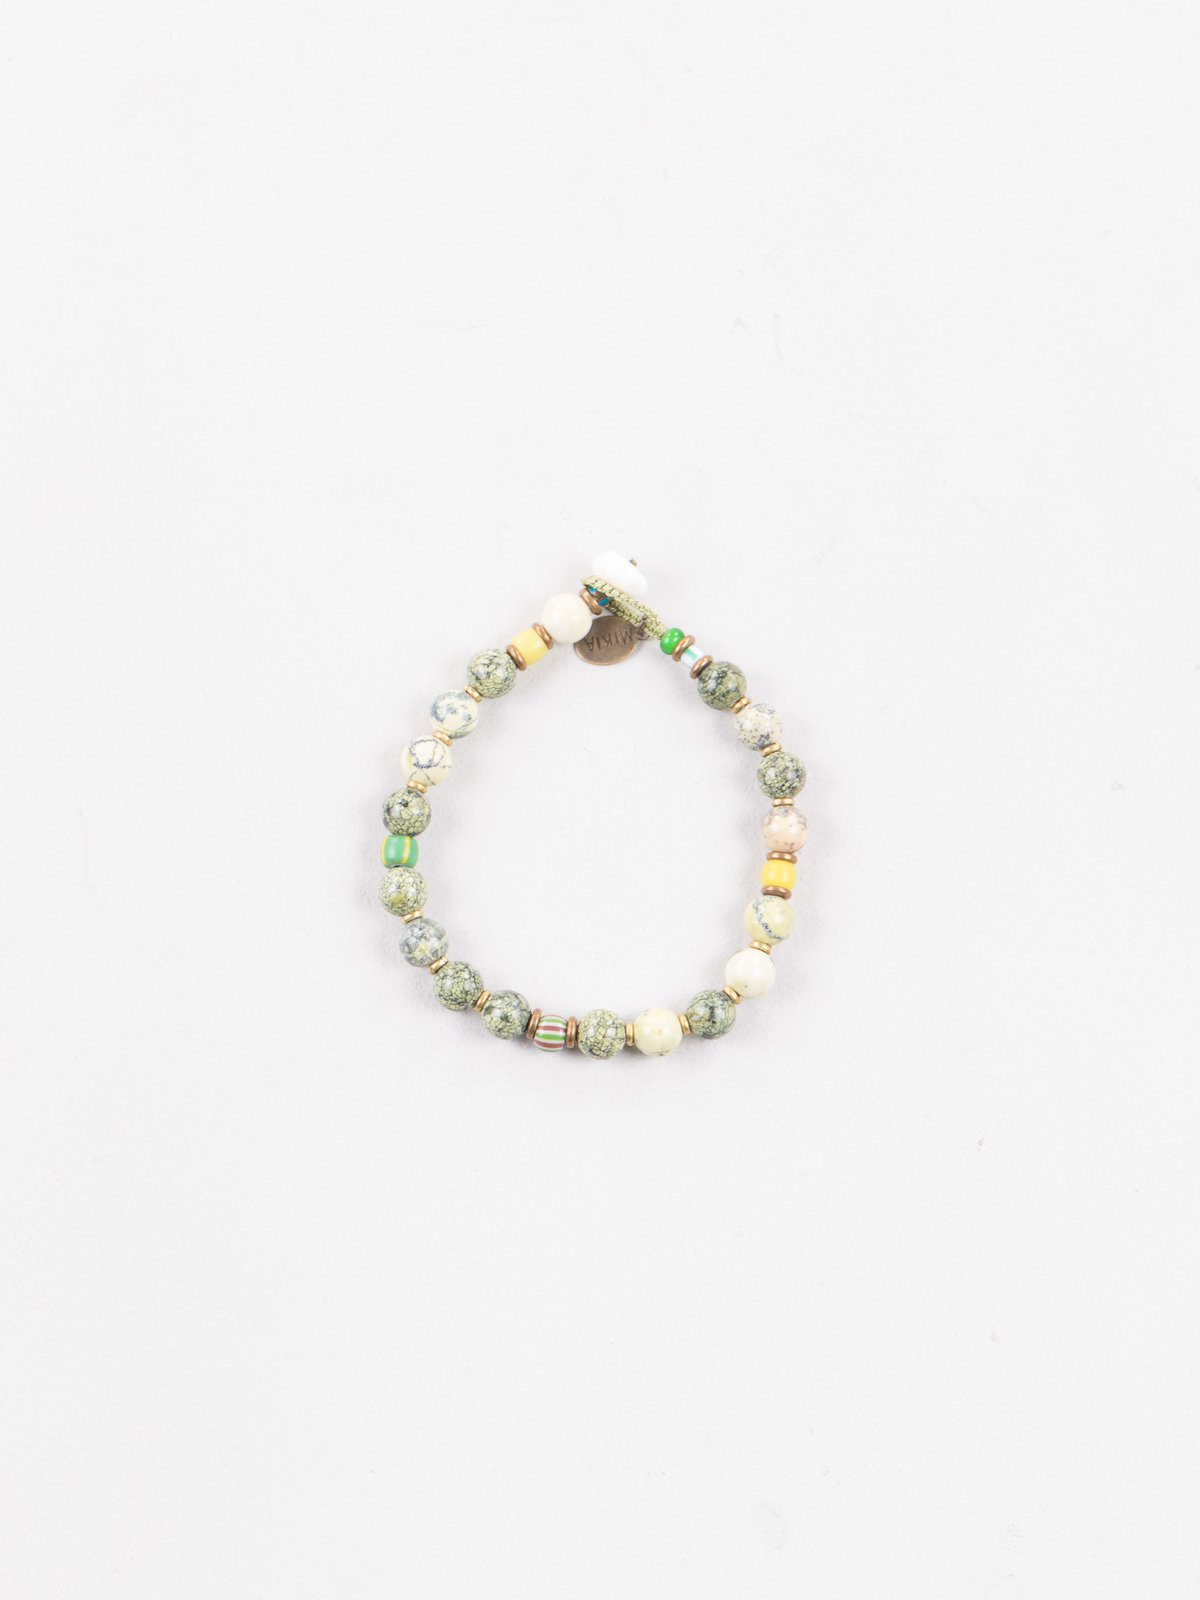 Yellow/Green 8mm Bracelet - Image 1